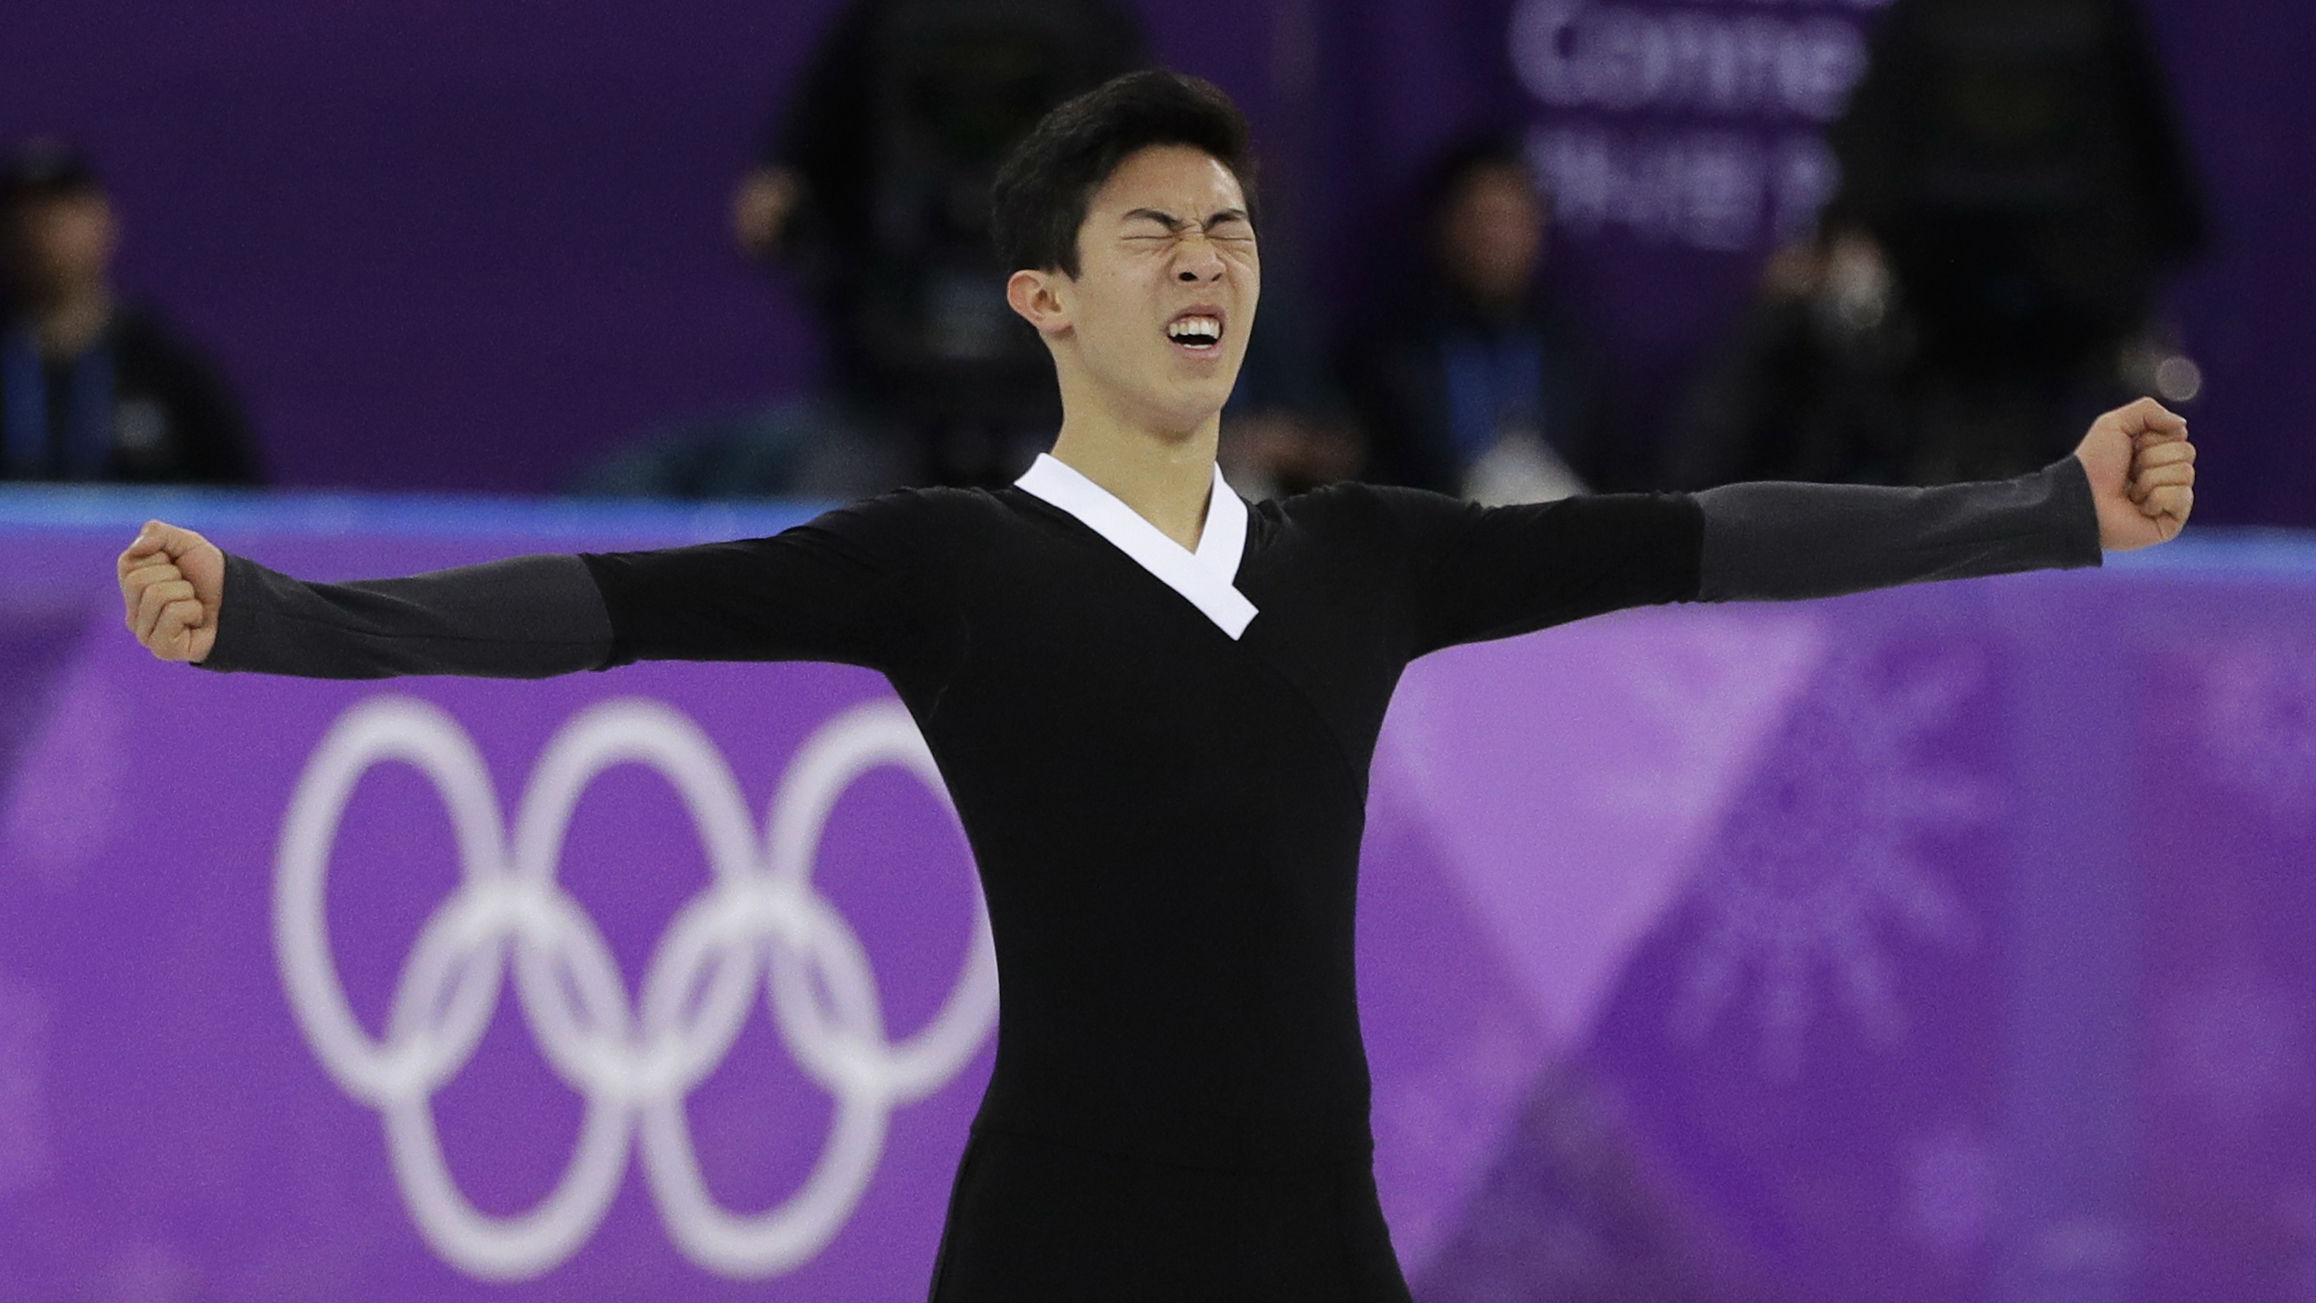 Chen makes Olympic history with five clean quads in free skate